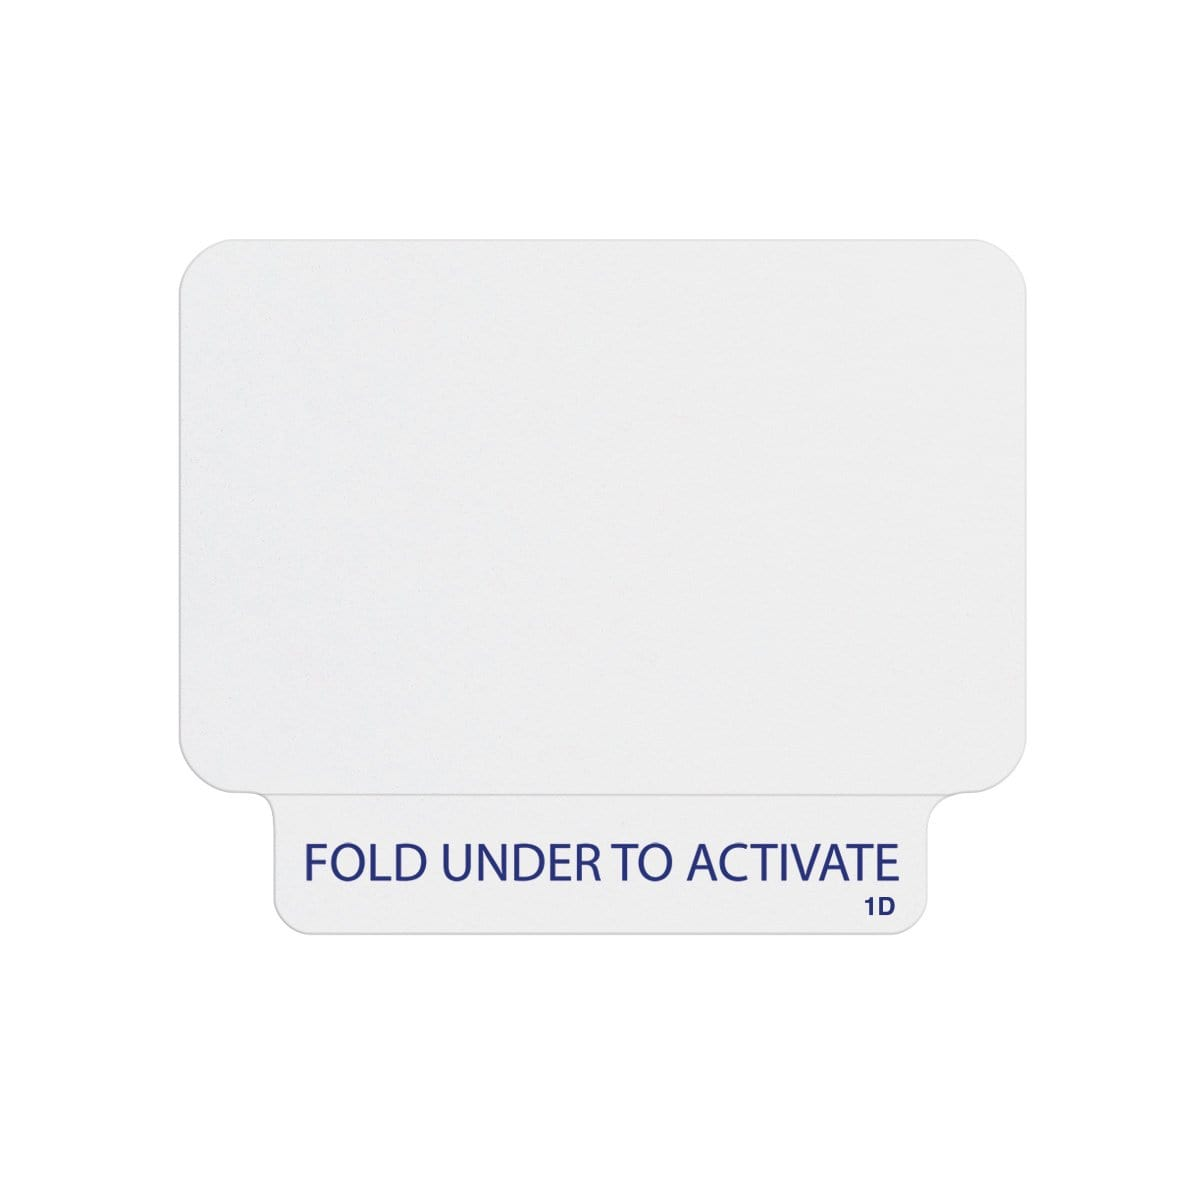 Thermal Printable ONEstep Quick Tab TimeBadge, Box of 1000 (P/N T2031)